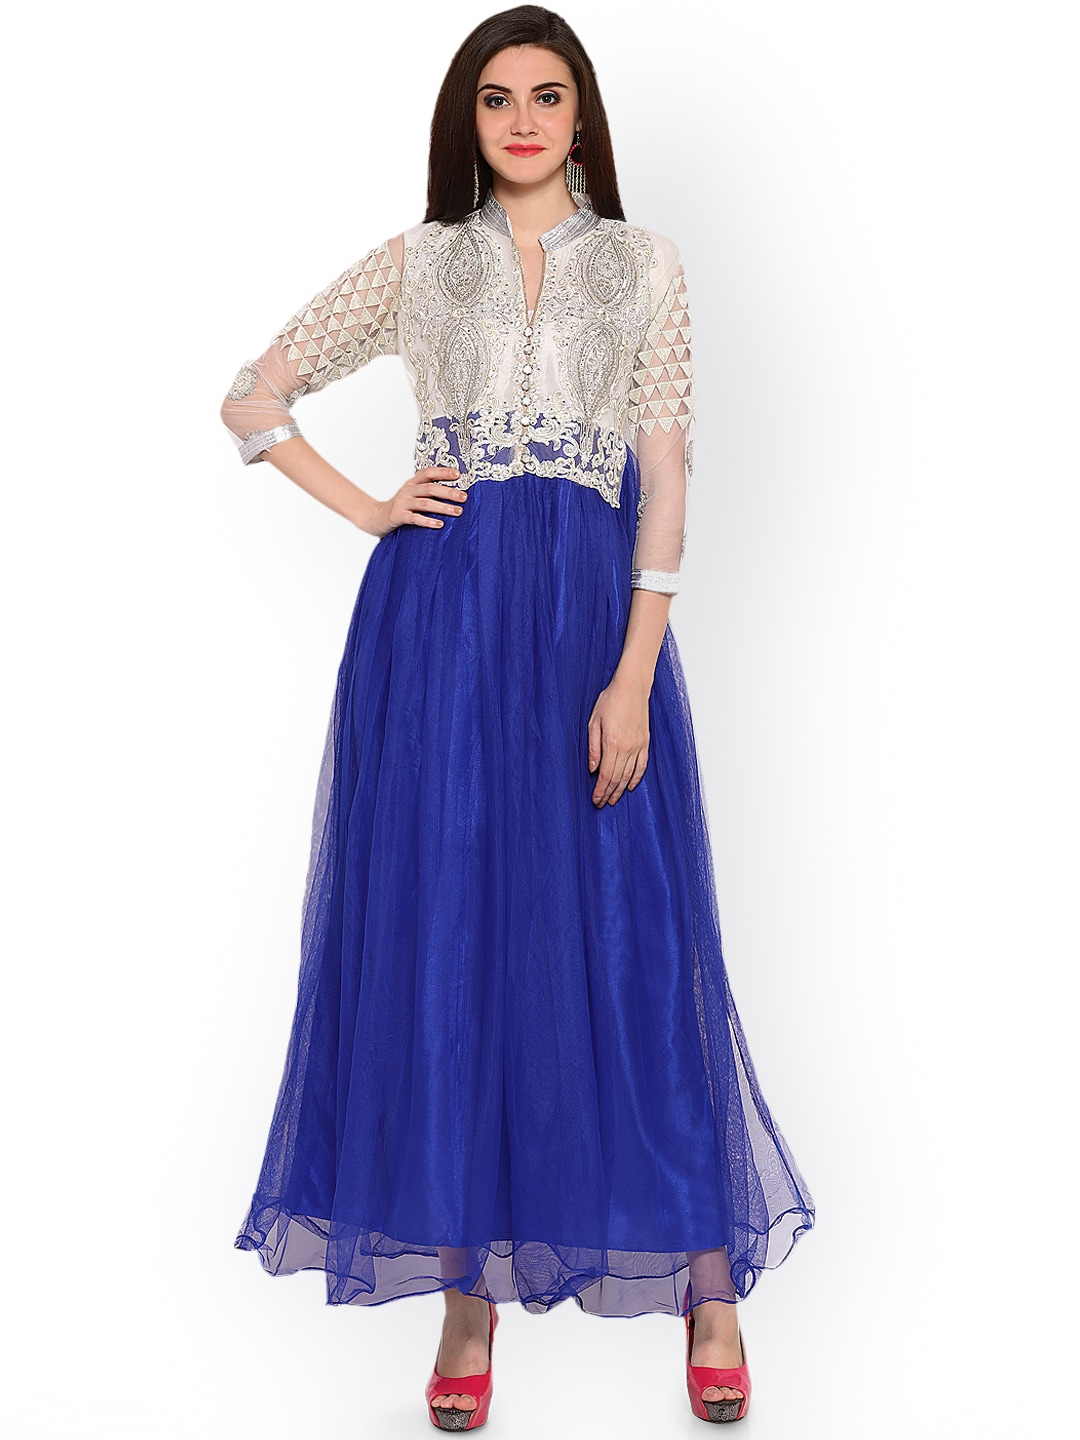 Blissta Blue & Cream-Coloured Net Semi-Stitched Gown Fabric image